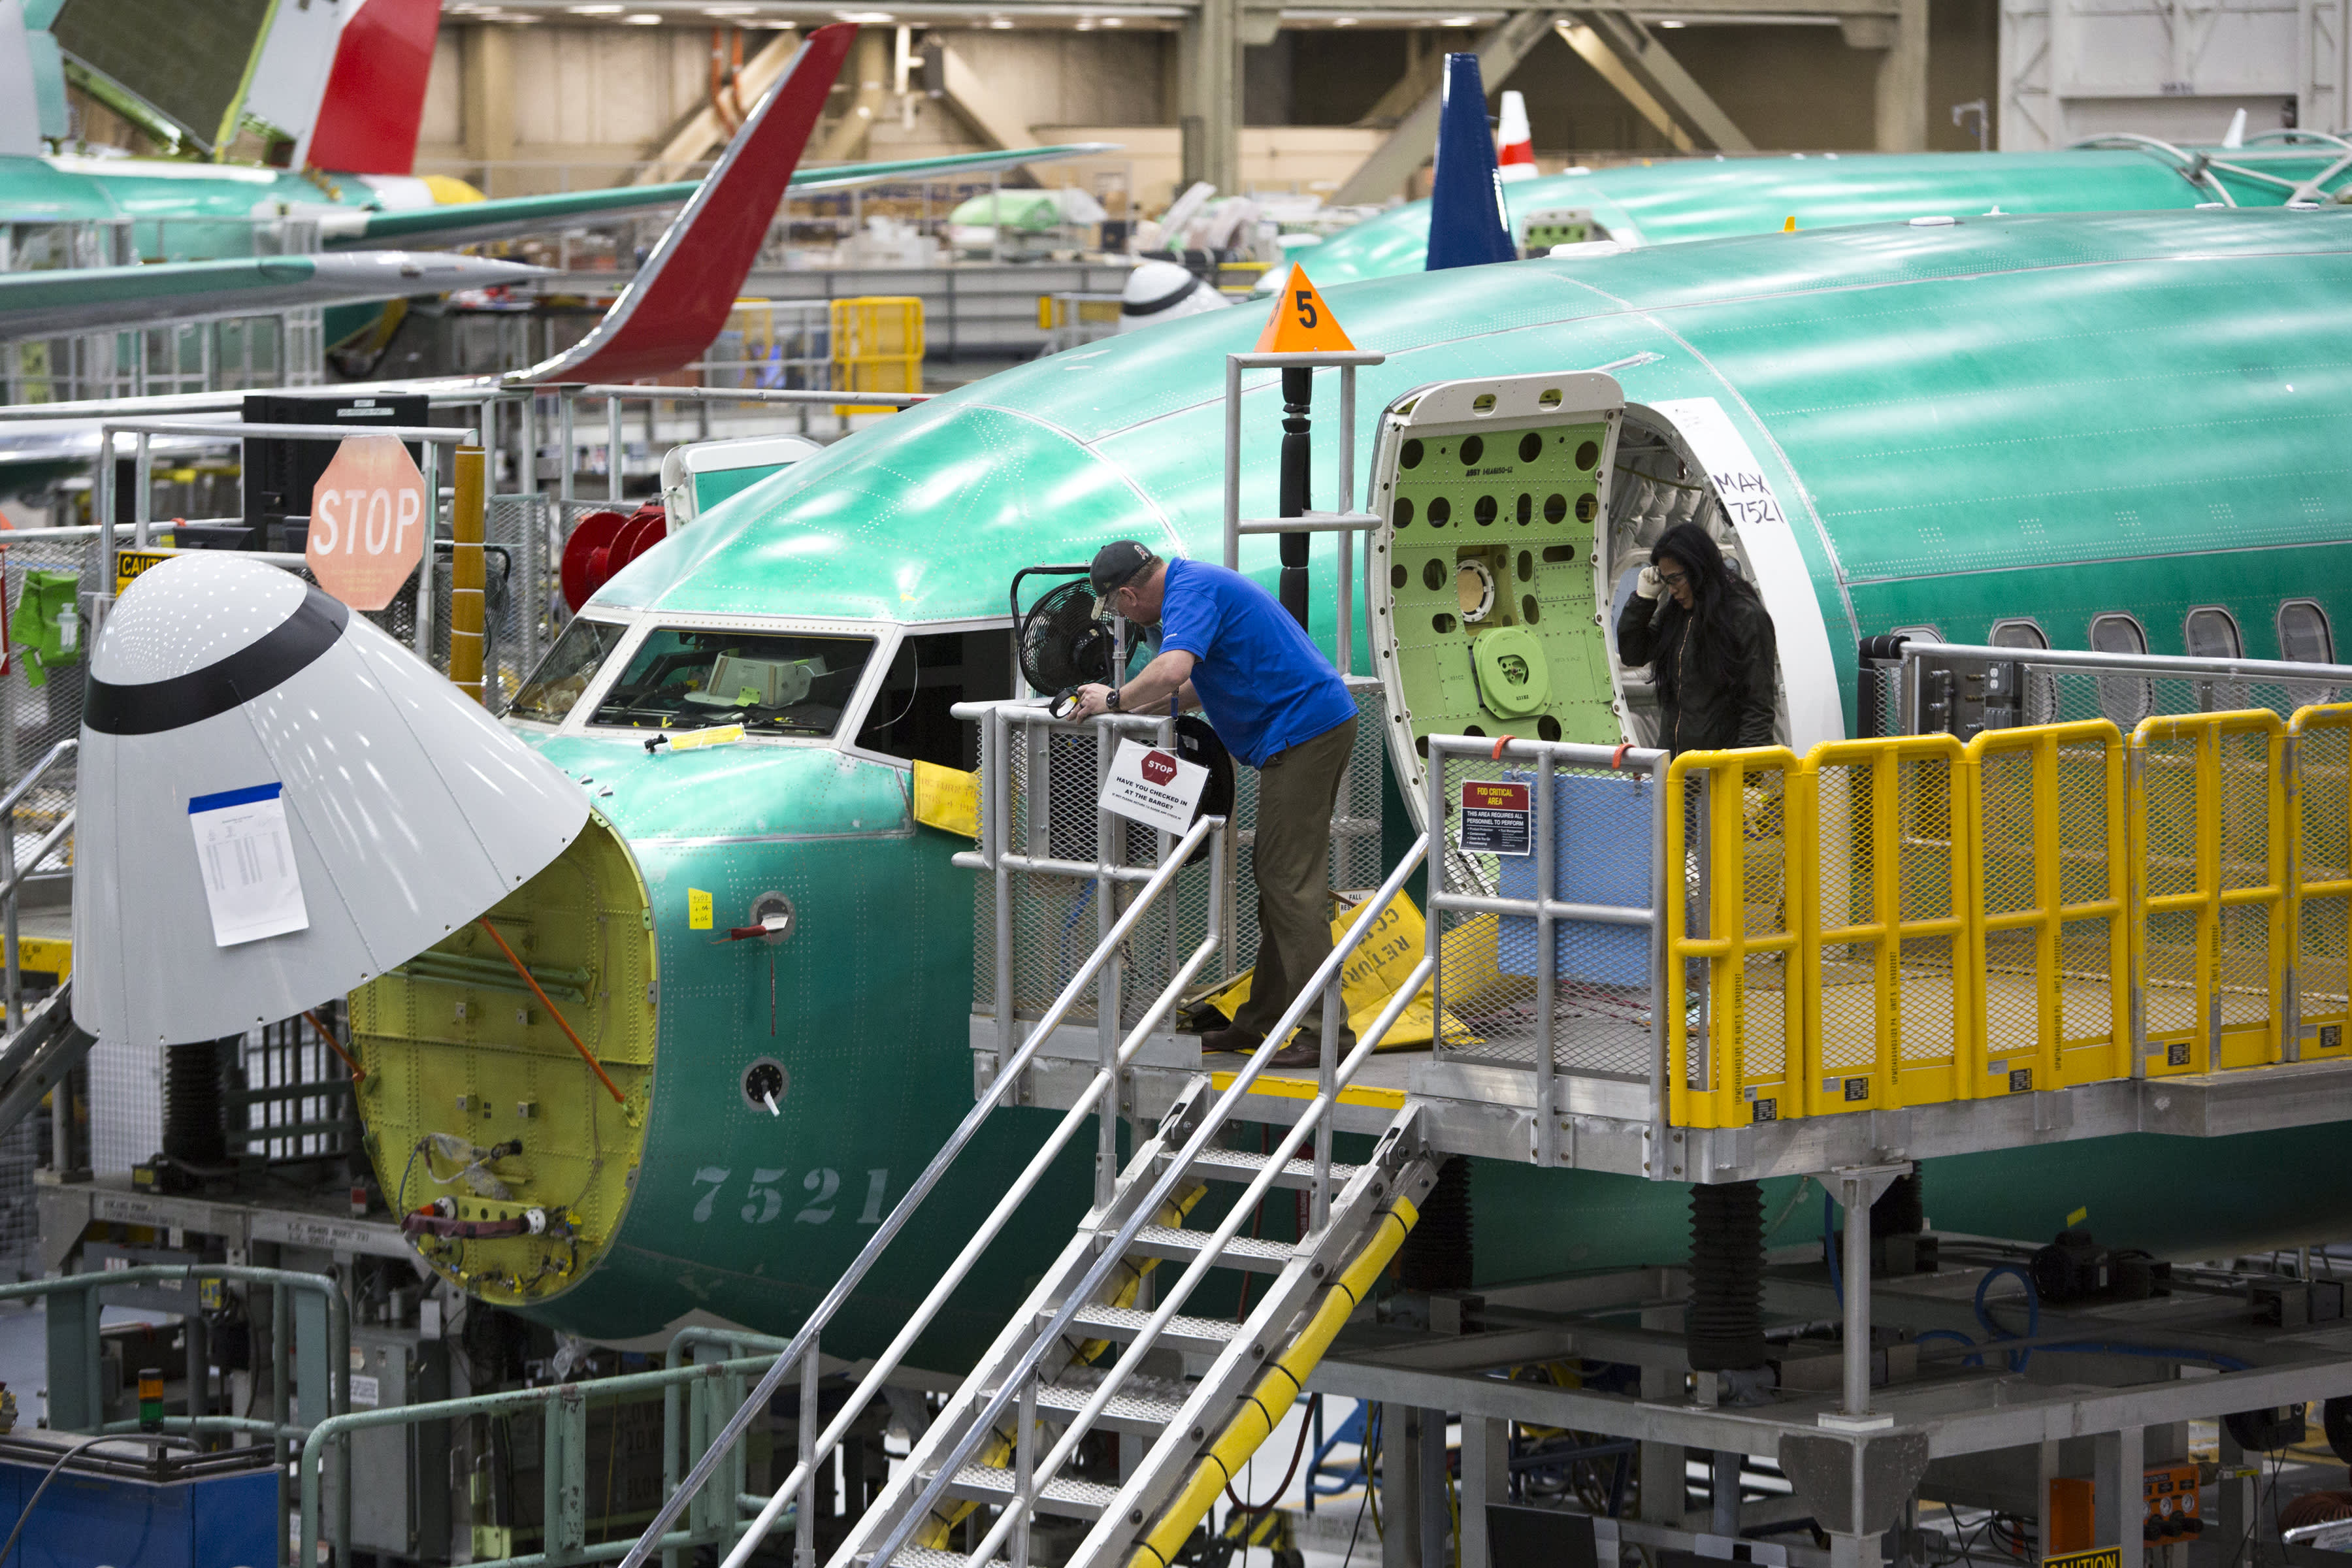 Boeing will still burn $1 billion a month on 737 Max even with production halt, JP Morgan says